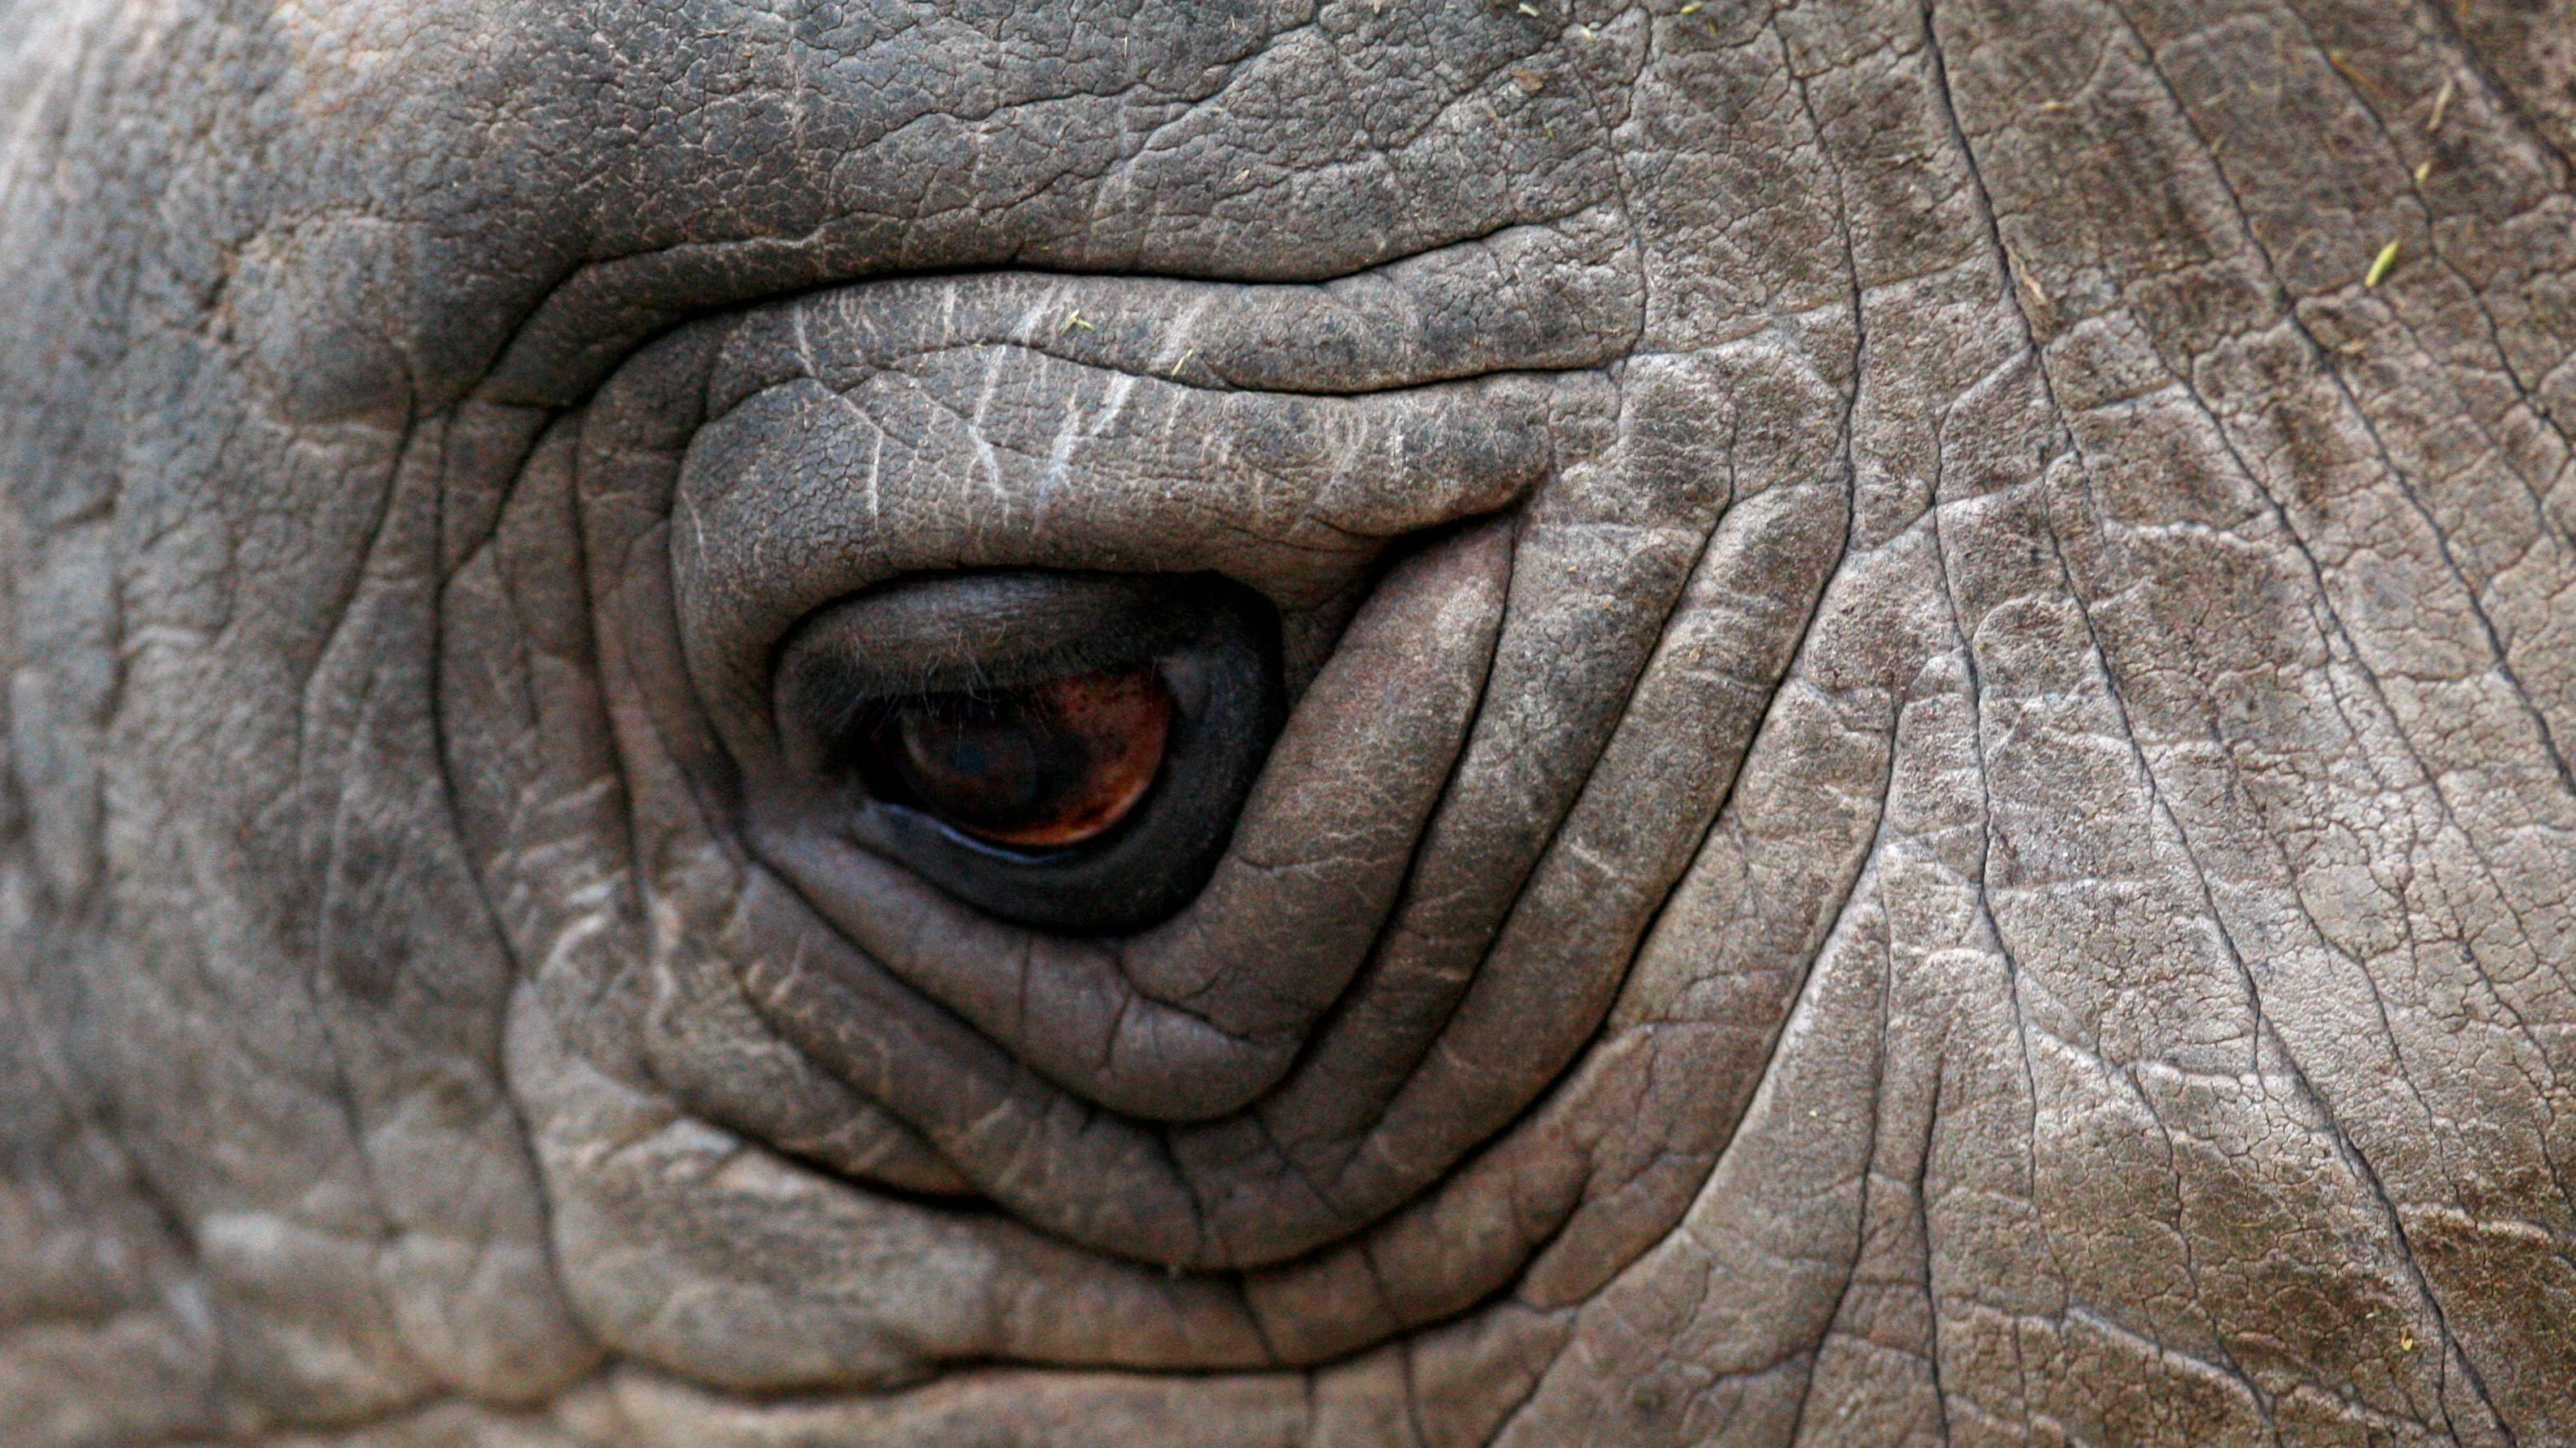 Close-up view of an eye of a Northern White Rhino at the zoo in Dvur Kralove nad Labem